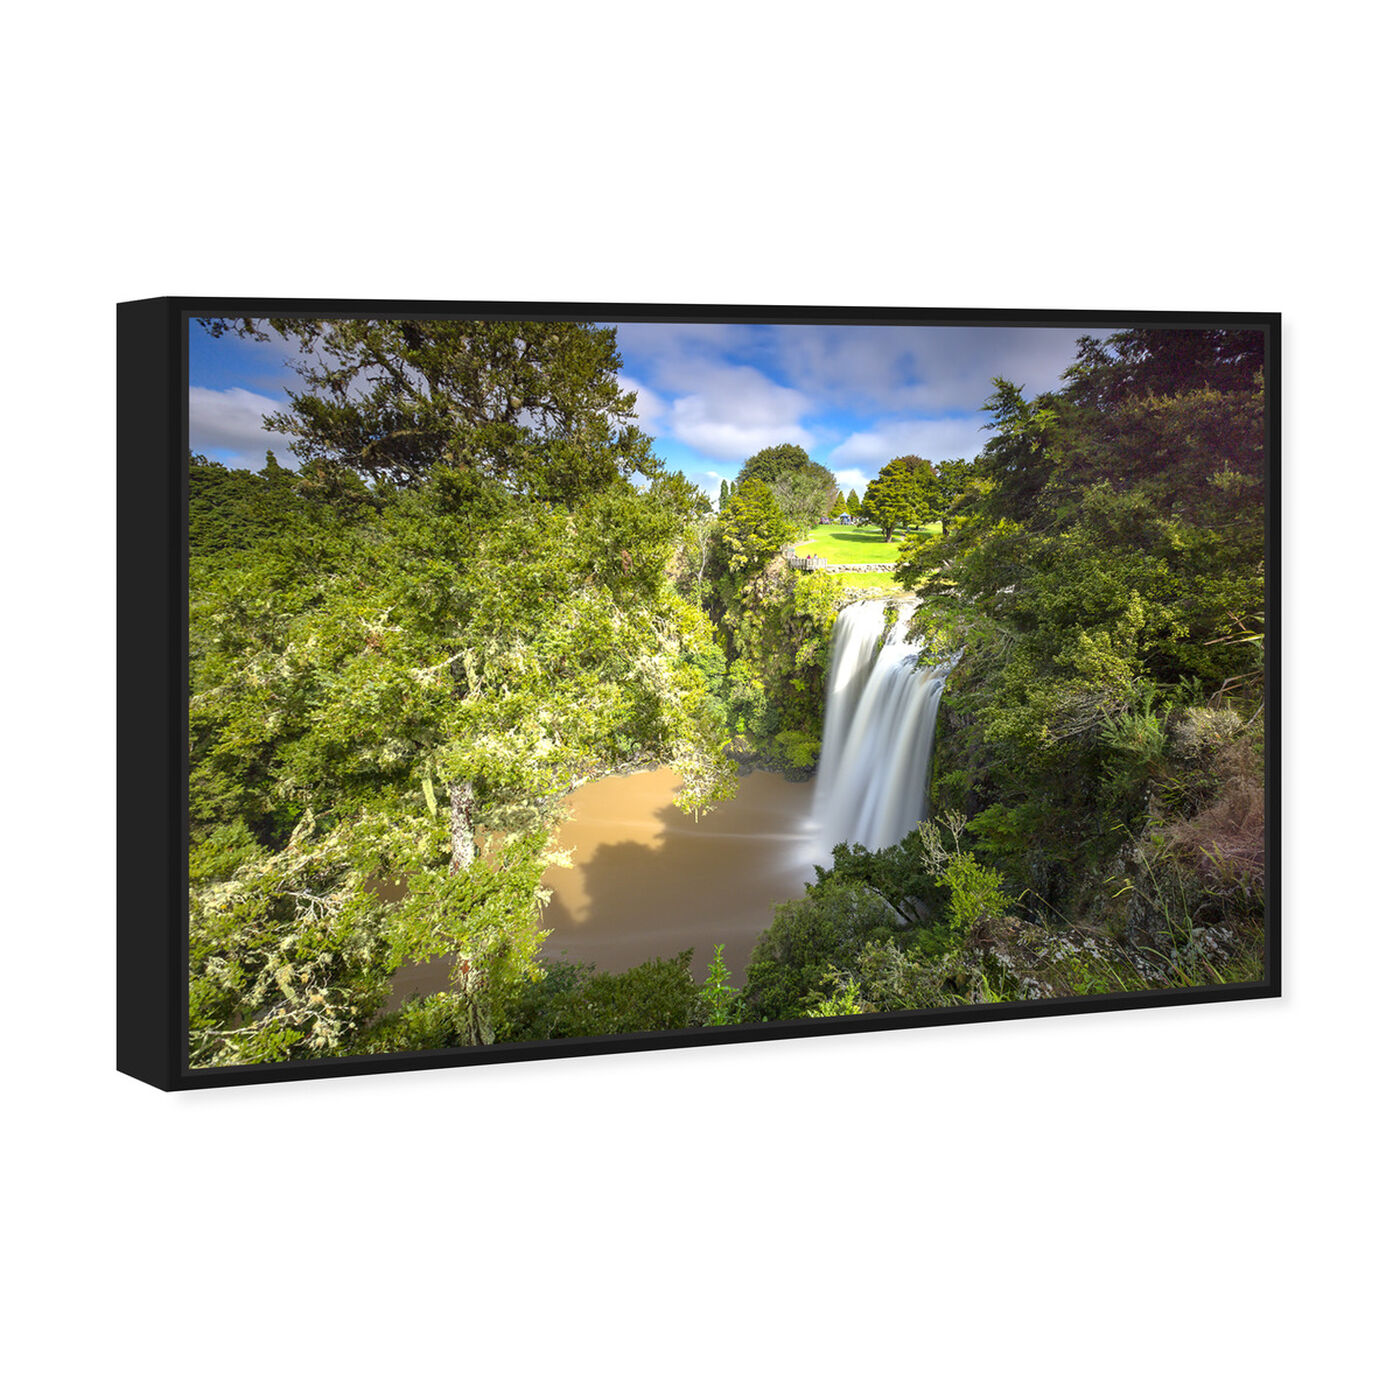 Angled view of Curro Cardenal - Rainforest II featuring nature and landscape and nature art.